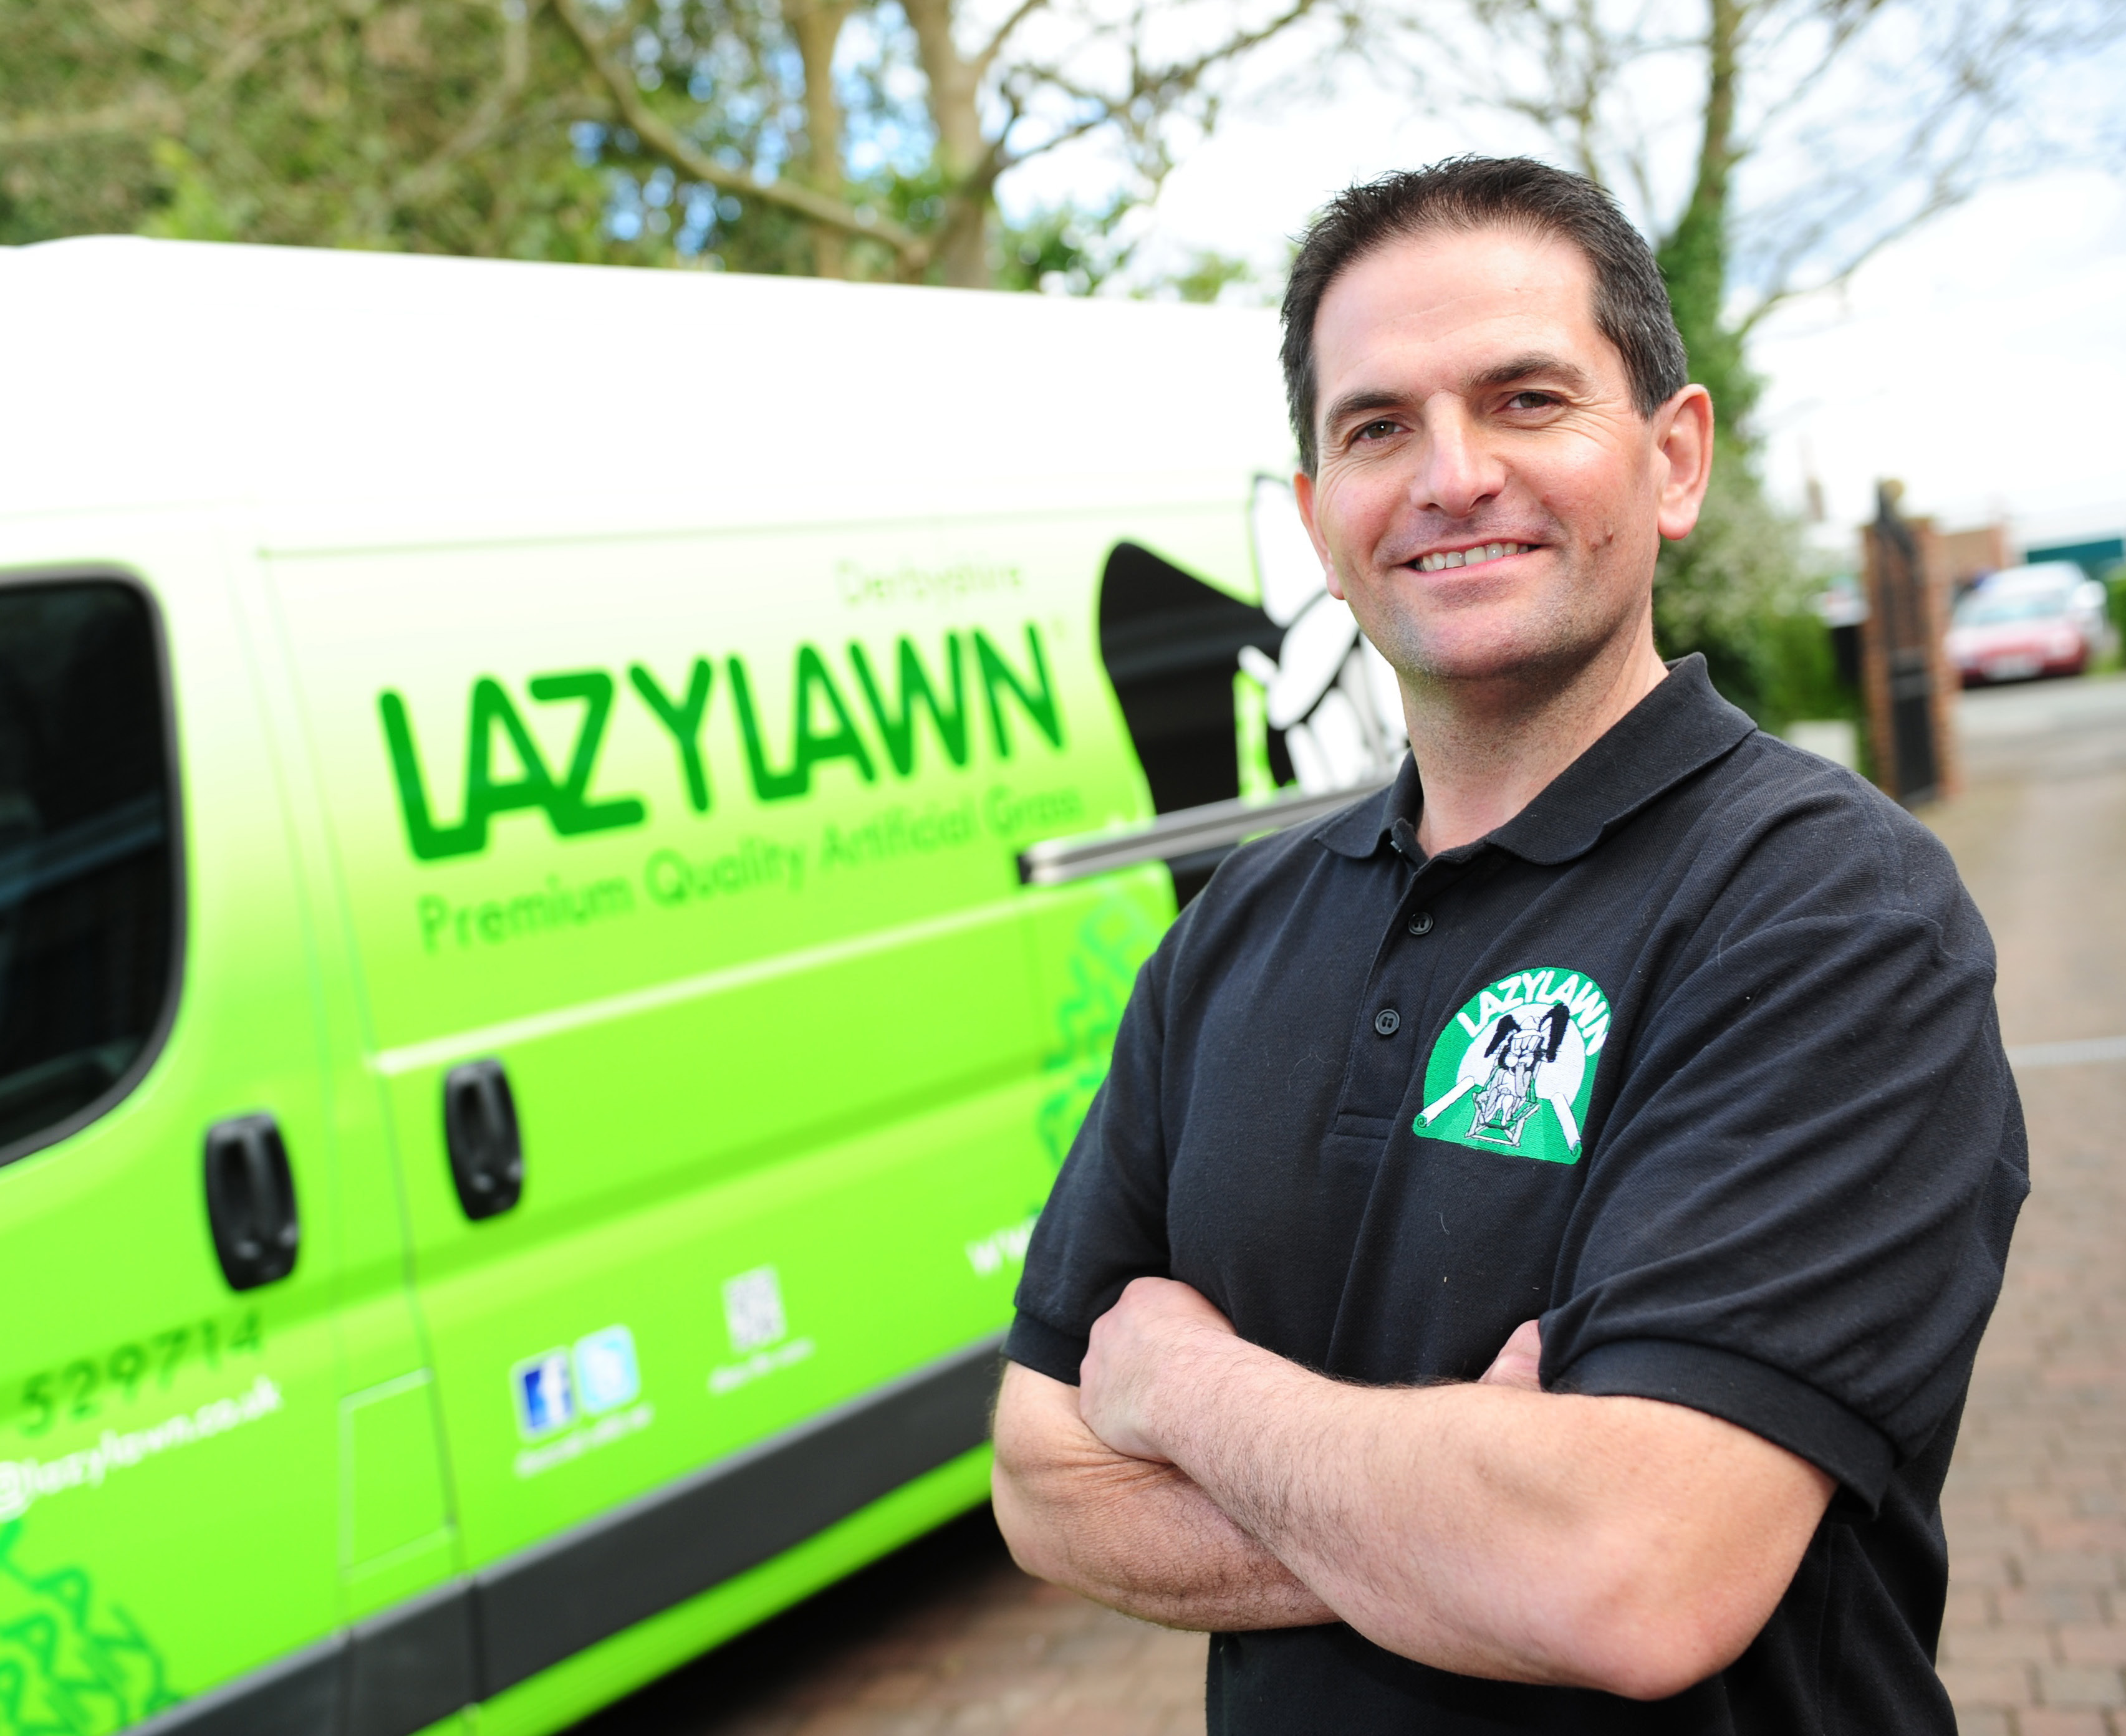 LazyLawn® South London